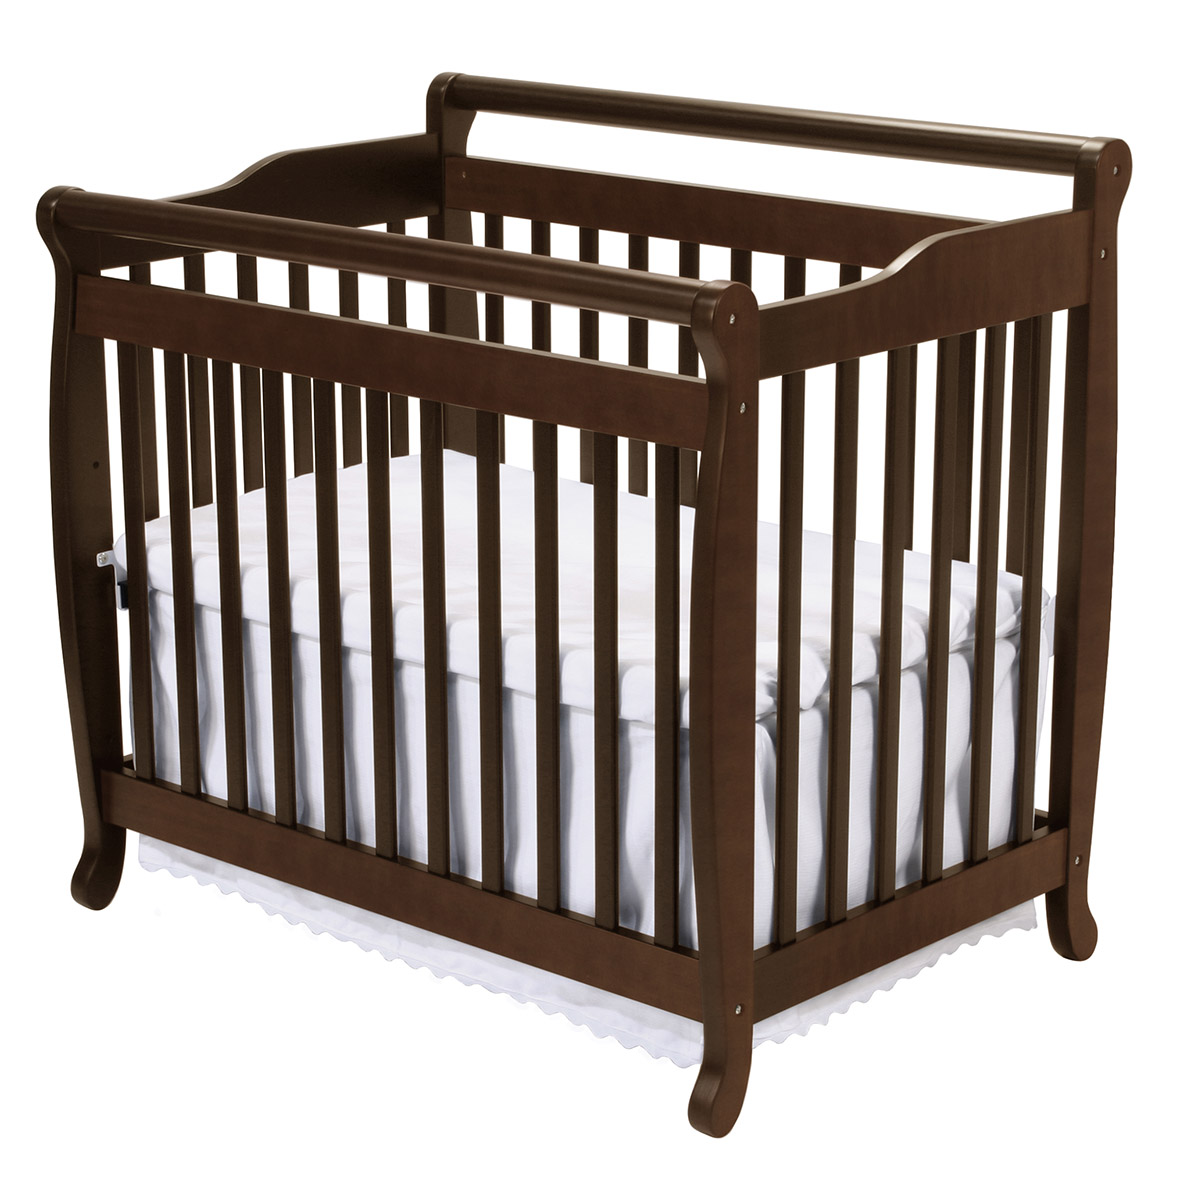 DaVinci Emily Mini 2 in 1 Convertible Crib in Espresso M4798Q FREE SHIPPING